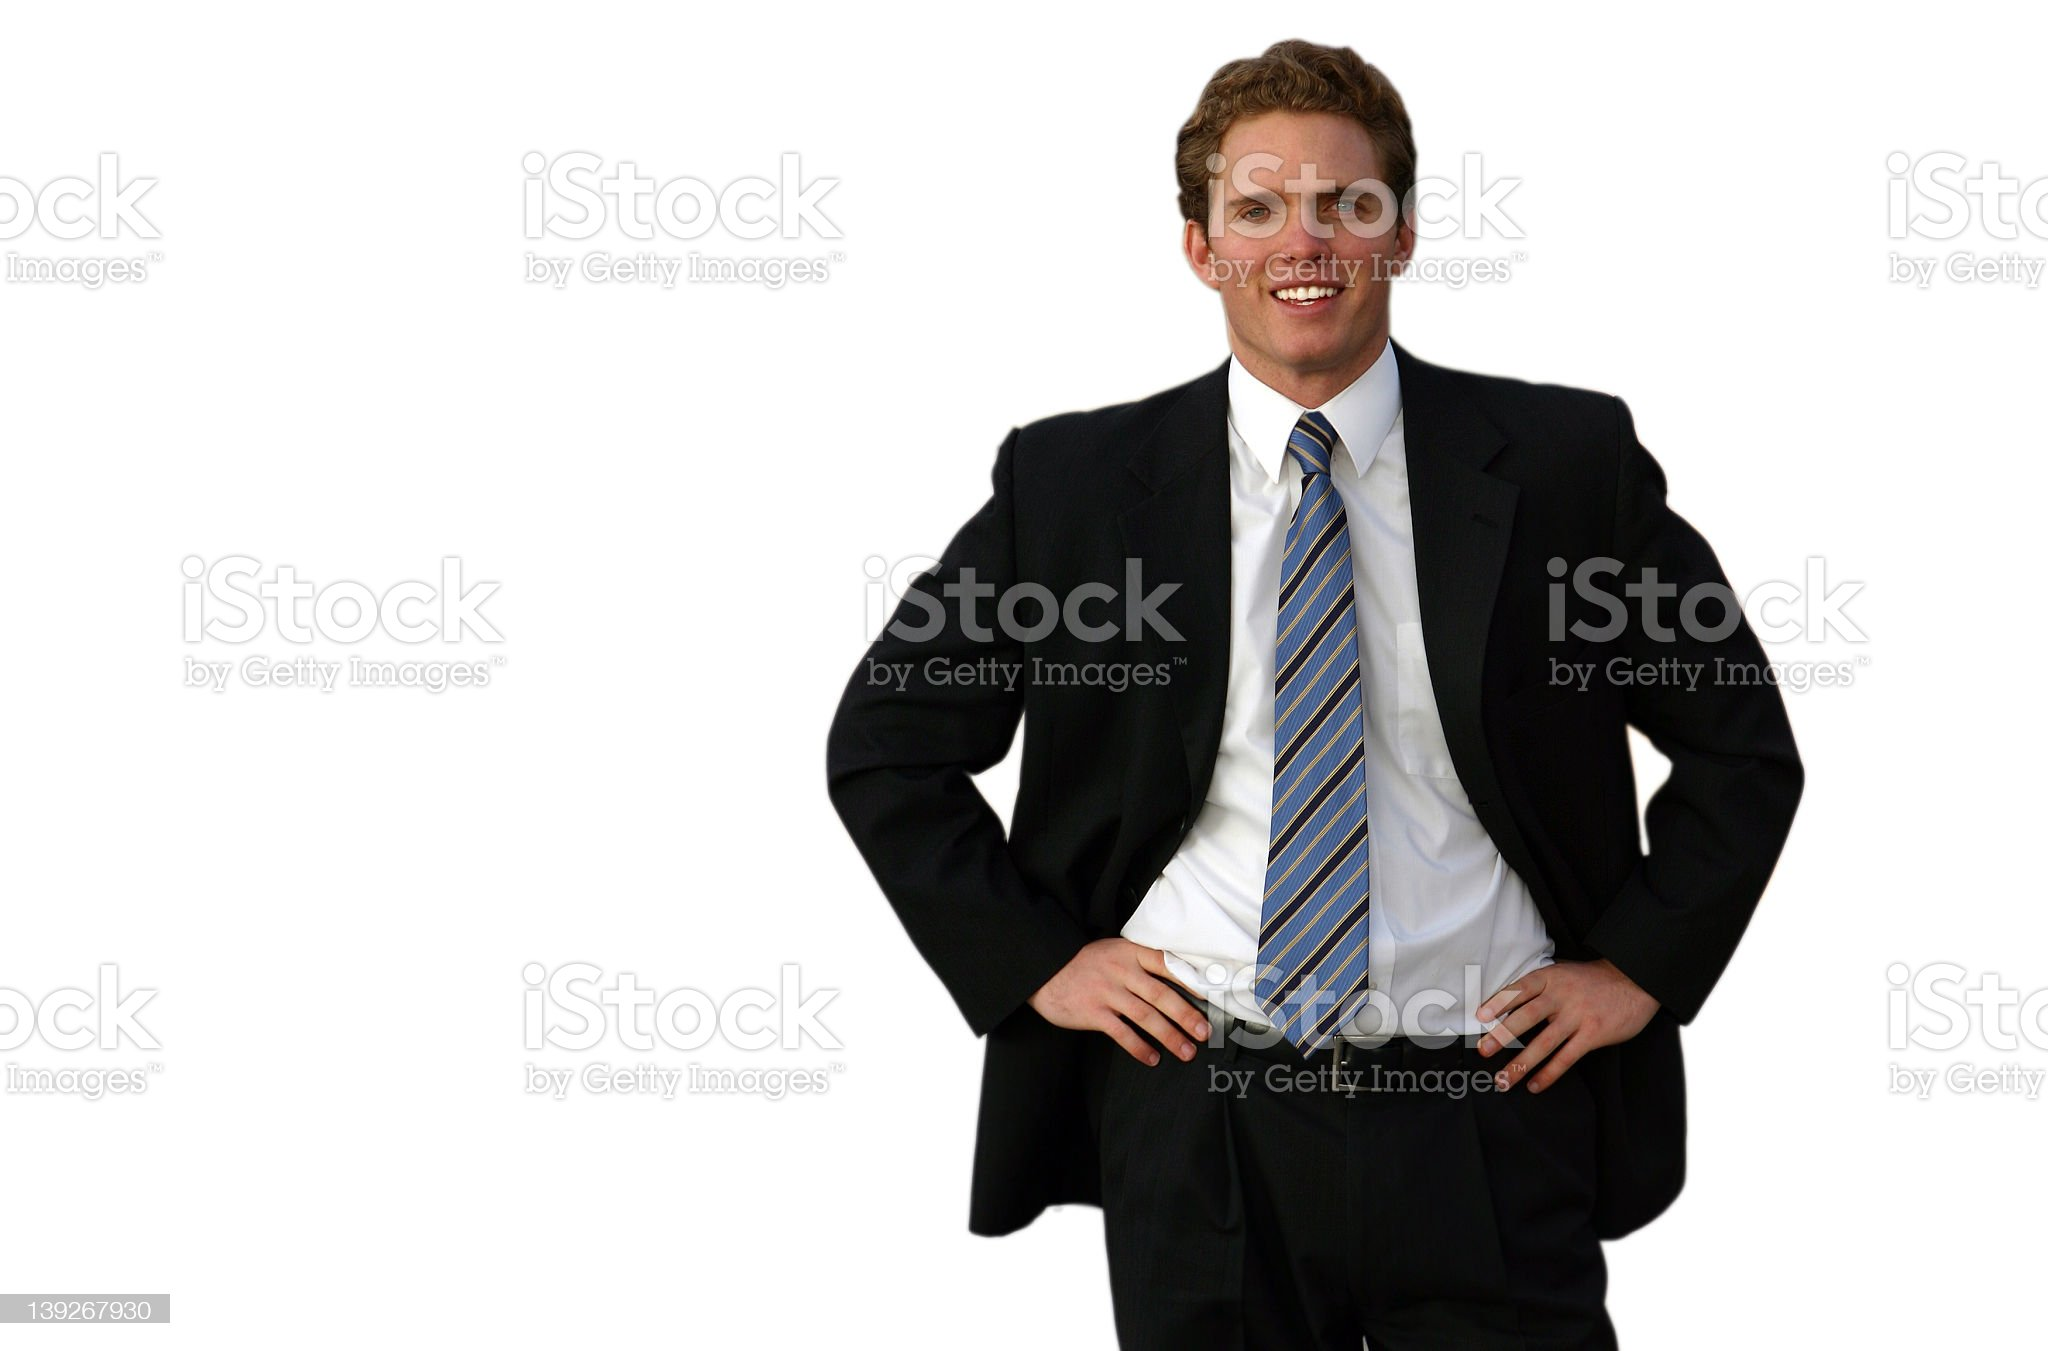 Male professional in a black suit with a blue, striped tie royalty-free stock photo